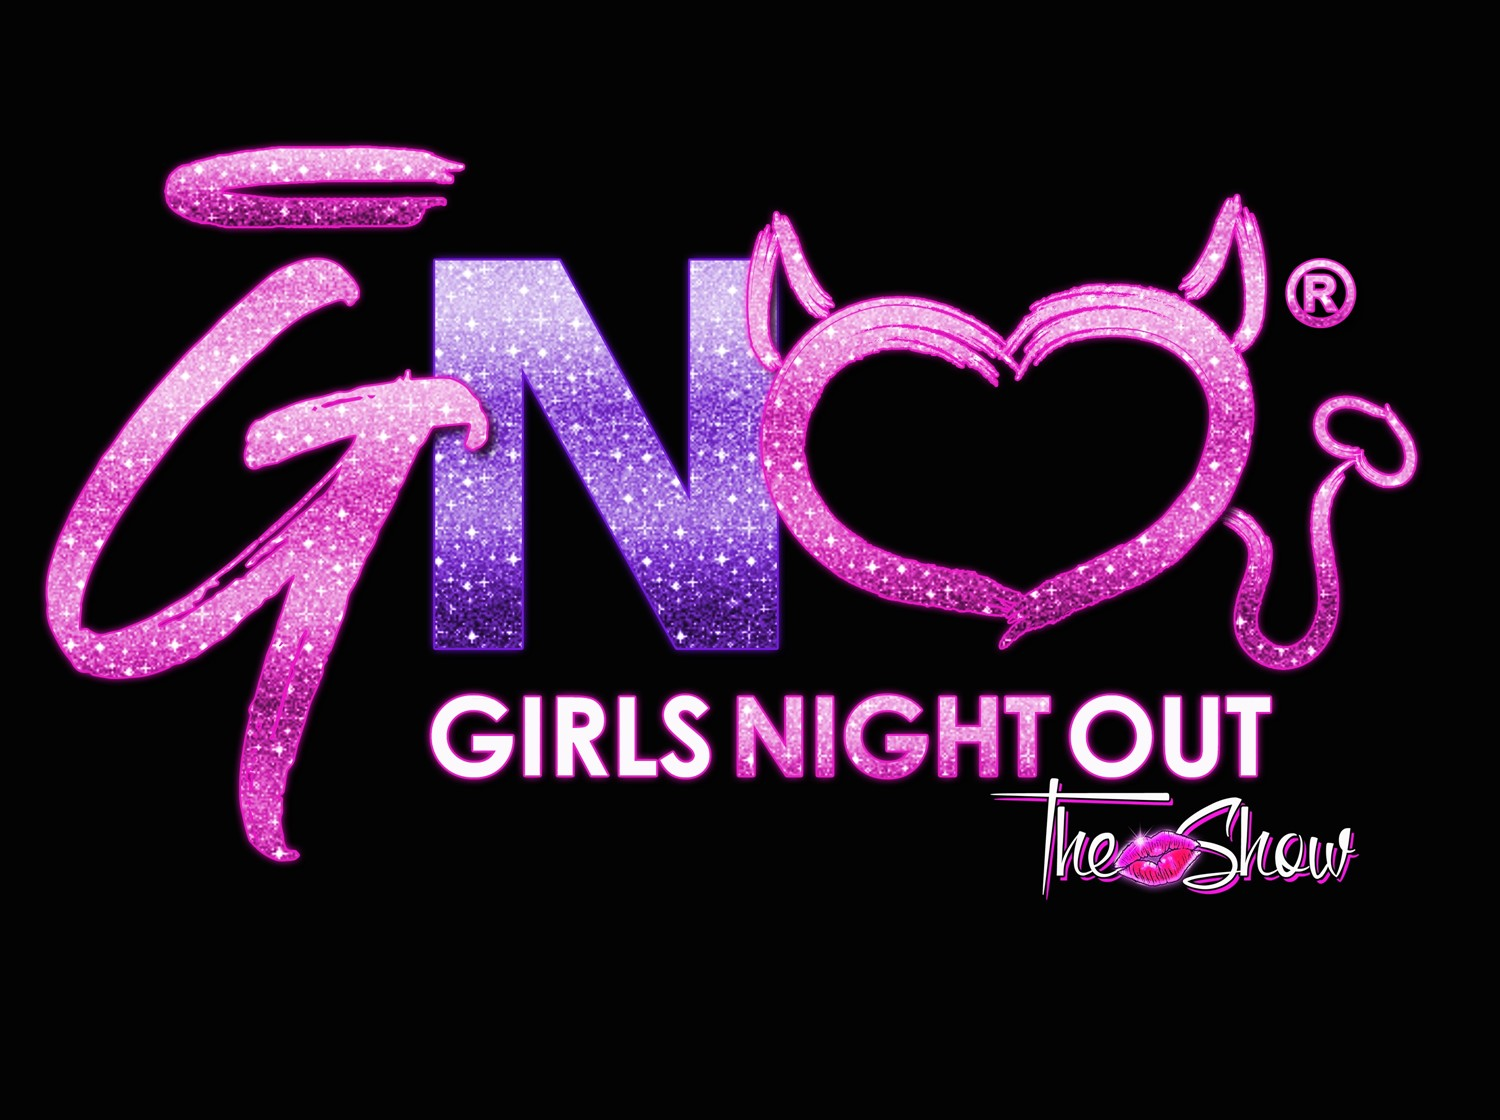 Warehouse Bar (21+) Salisbury, MD on May 22, 21:00@Warehouse Bar - Buy tickets and Get information on Girls Night Out the Show tickets.girlsnightouttheshow.com